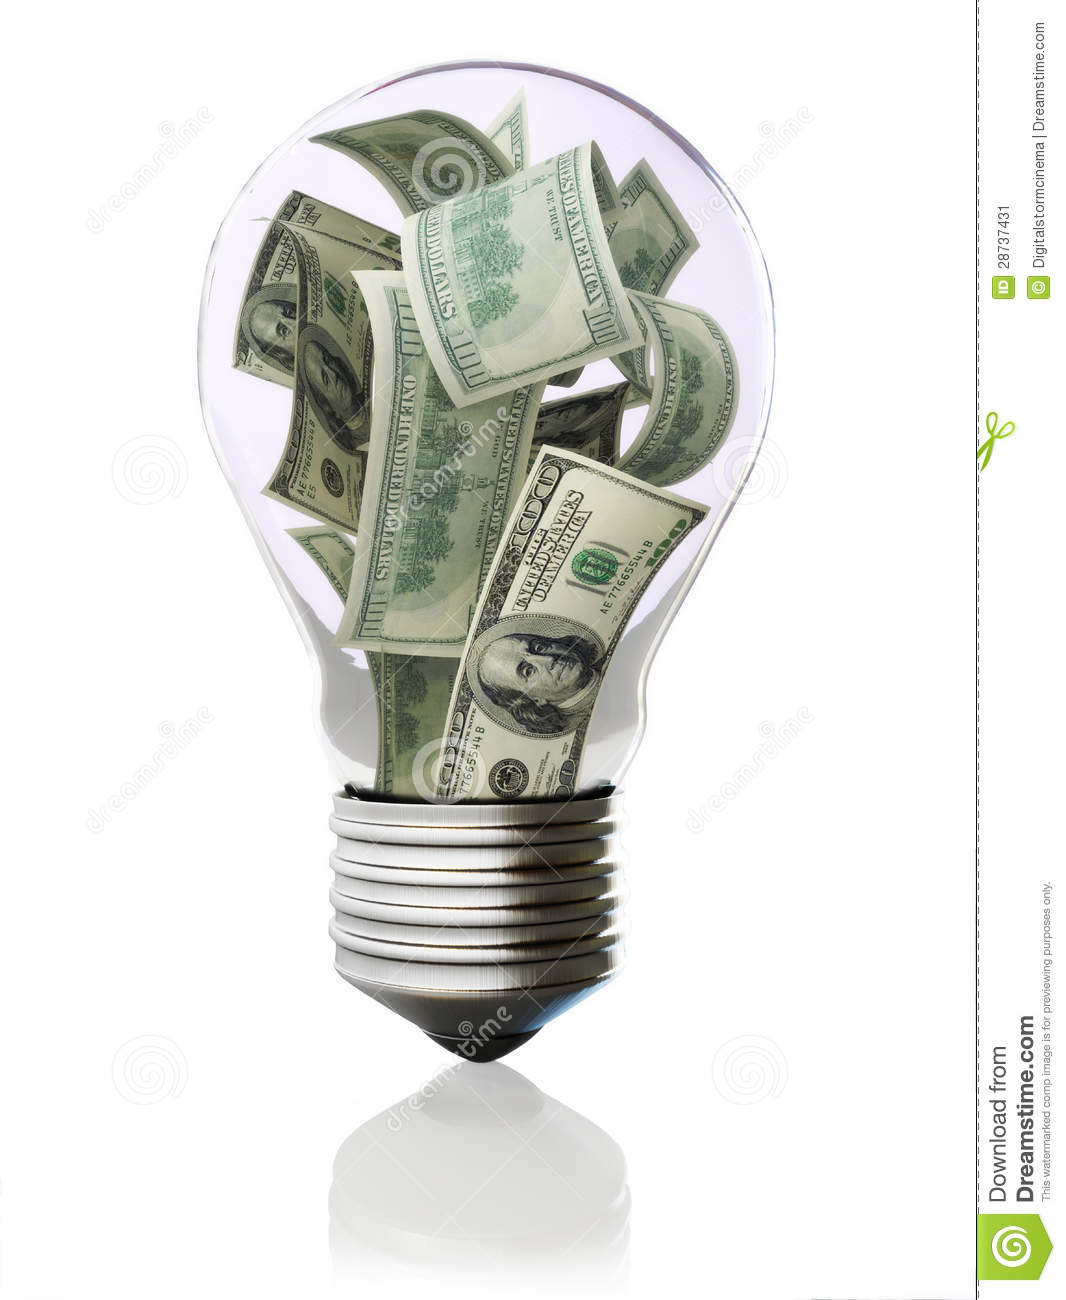 Money In Light Bulb Concept Stock Image - Image: 28737431